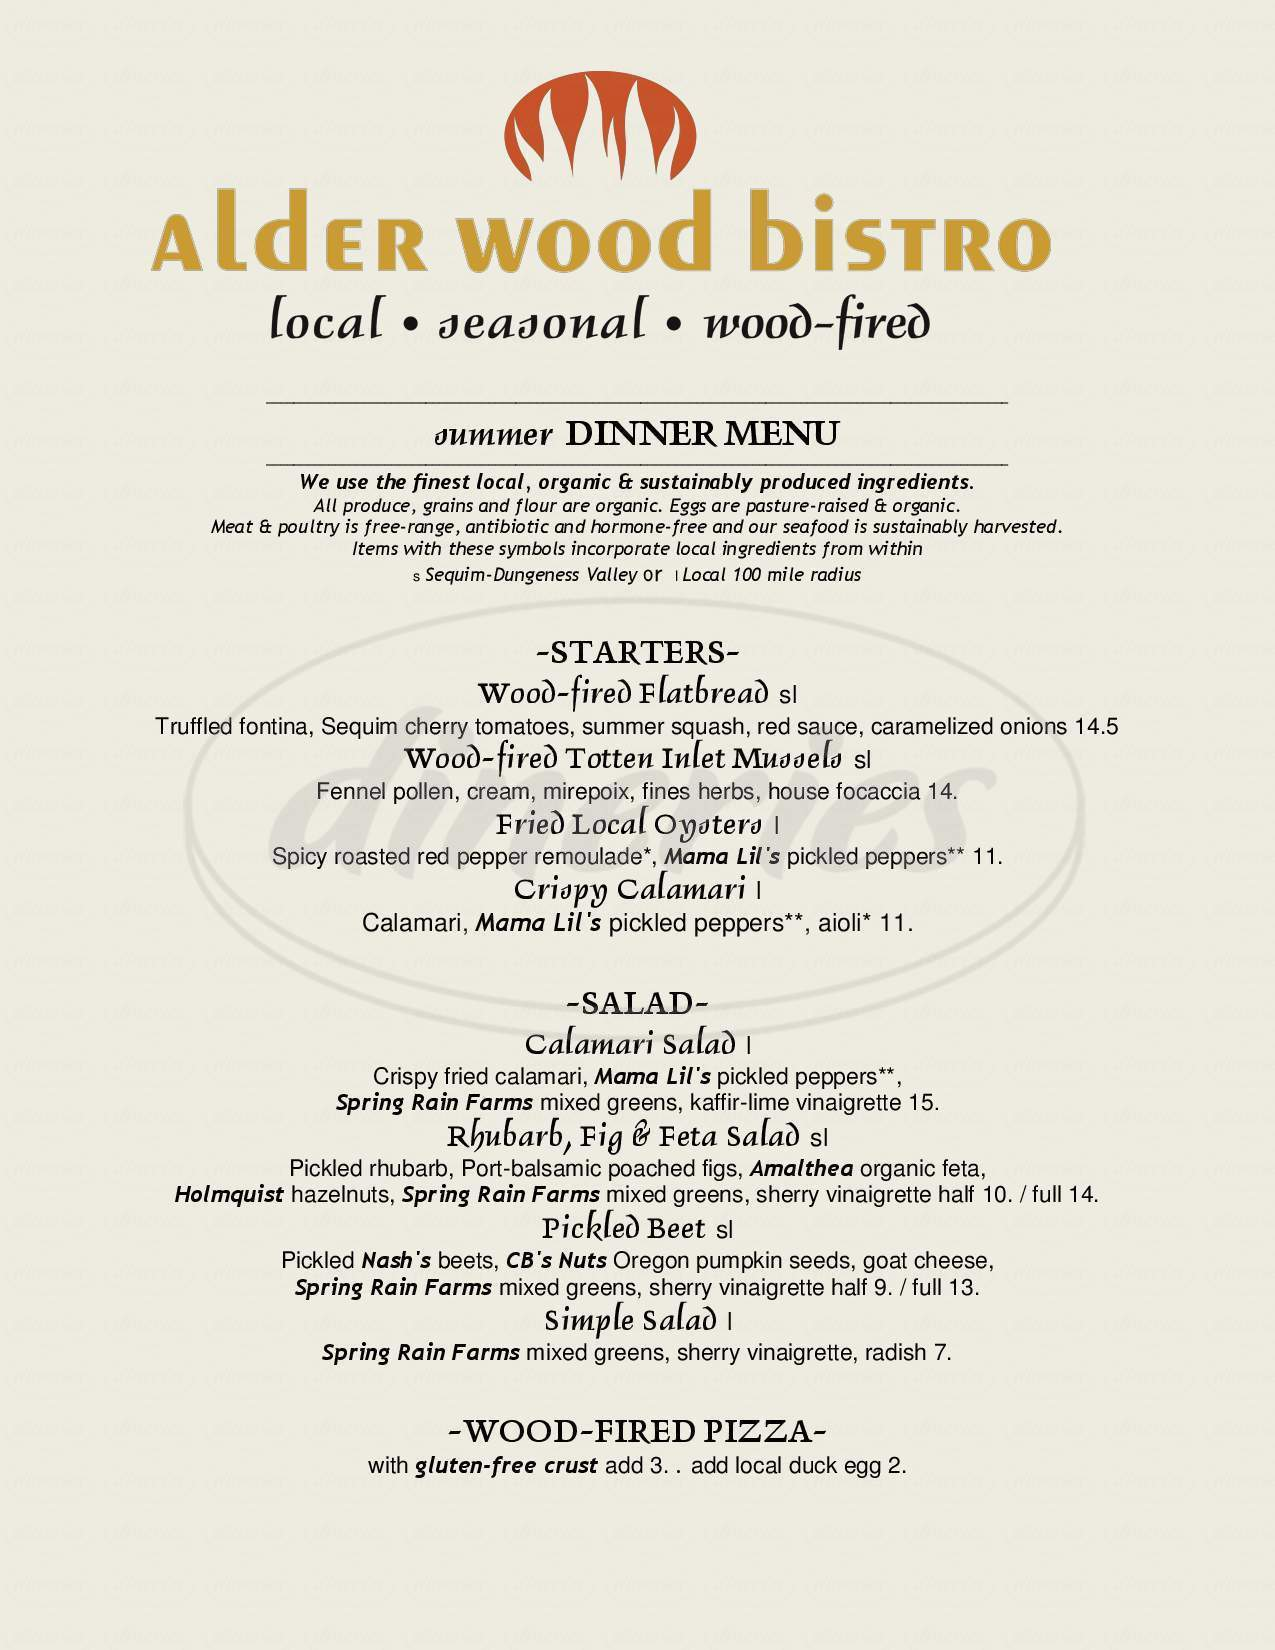 menu for Alder Wood Bistro